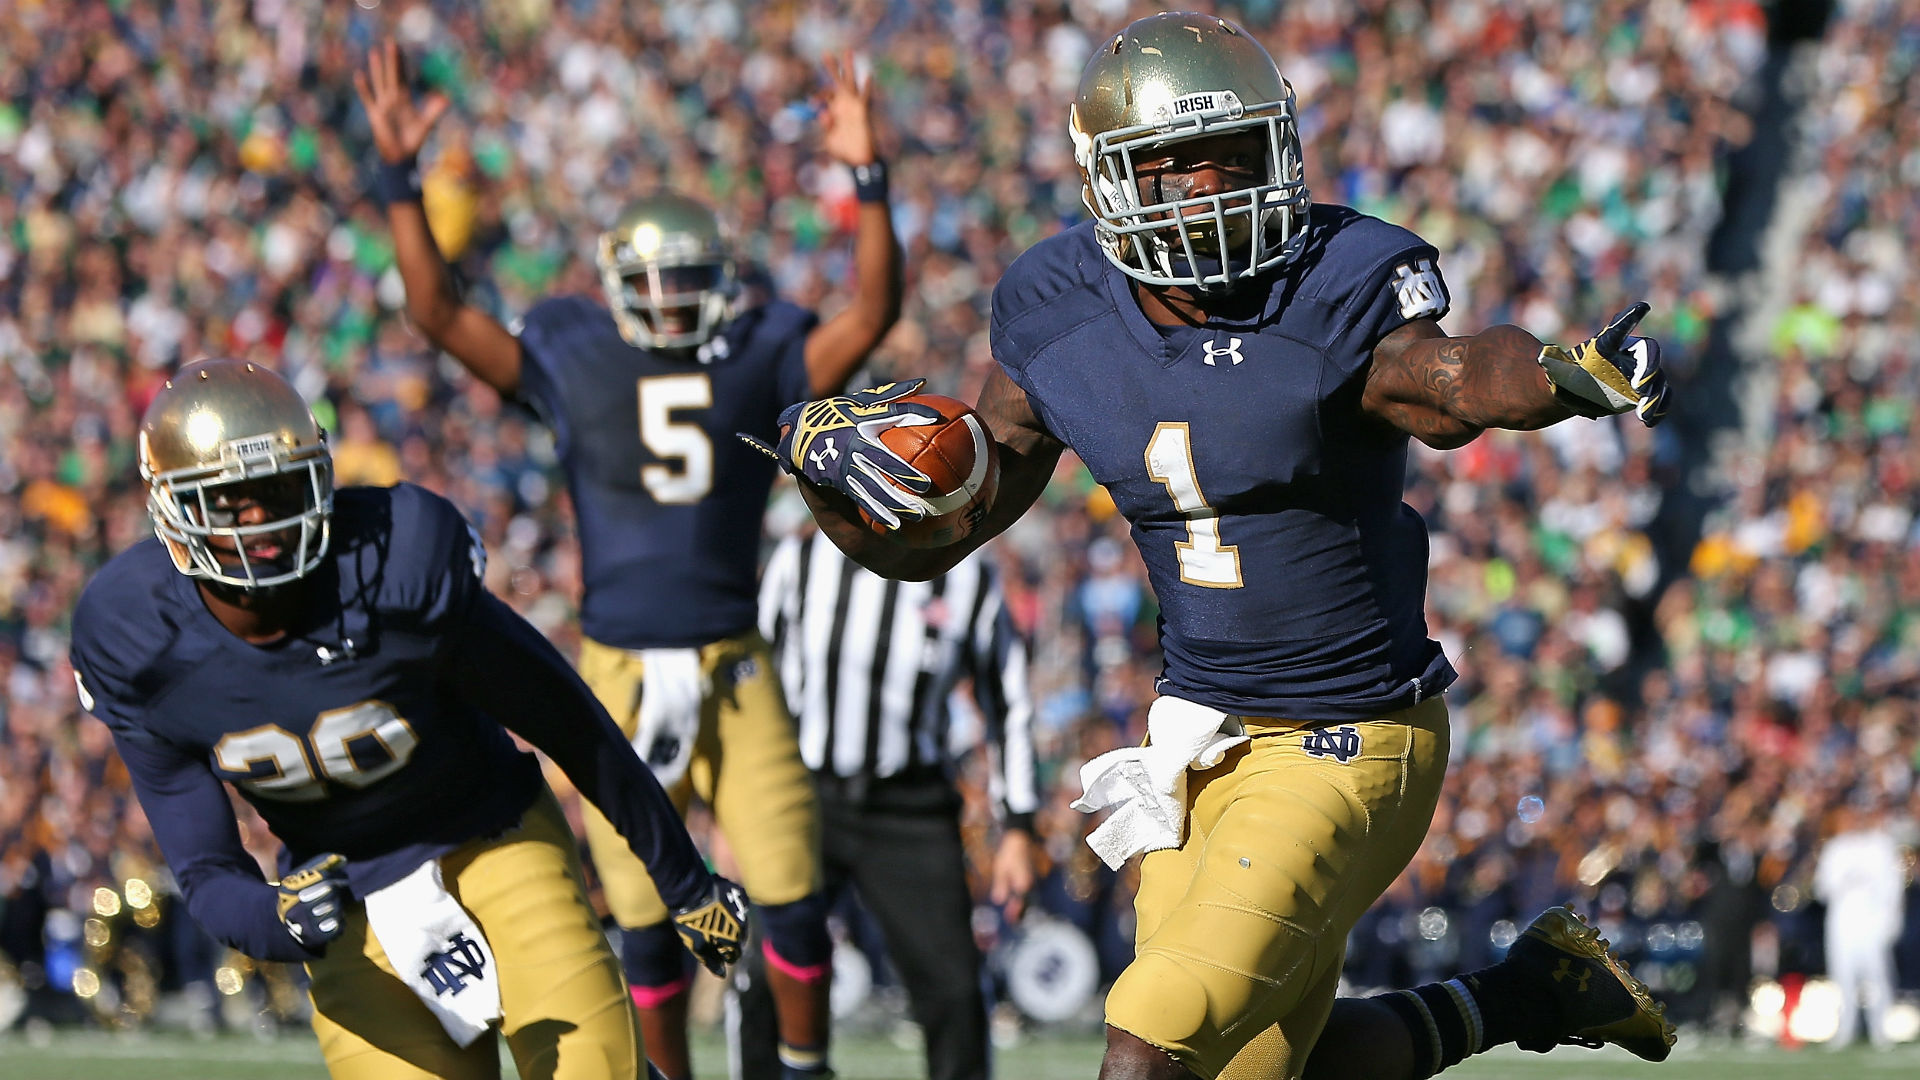 Irish RB Greg Bryant academically ineligible for season